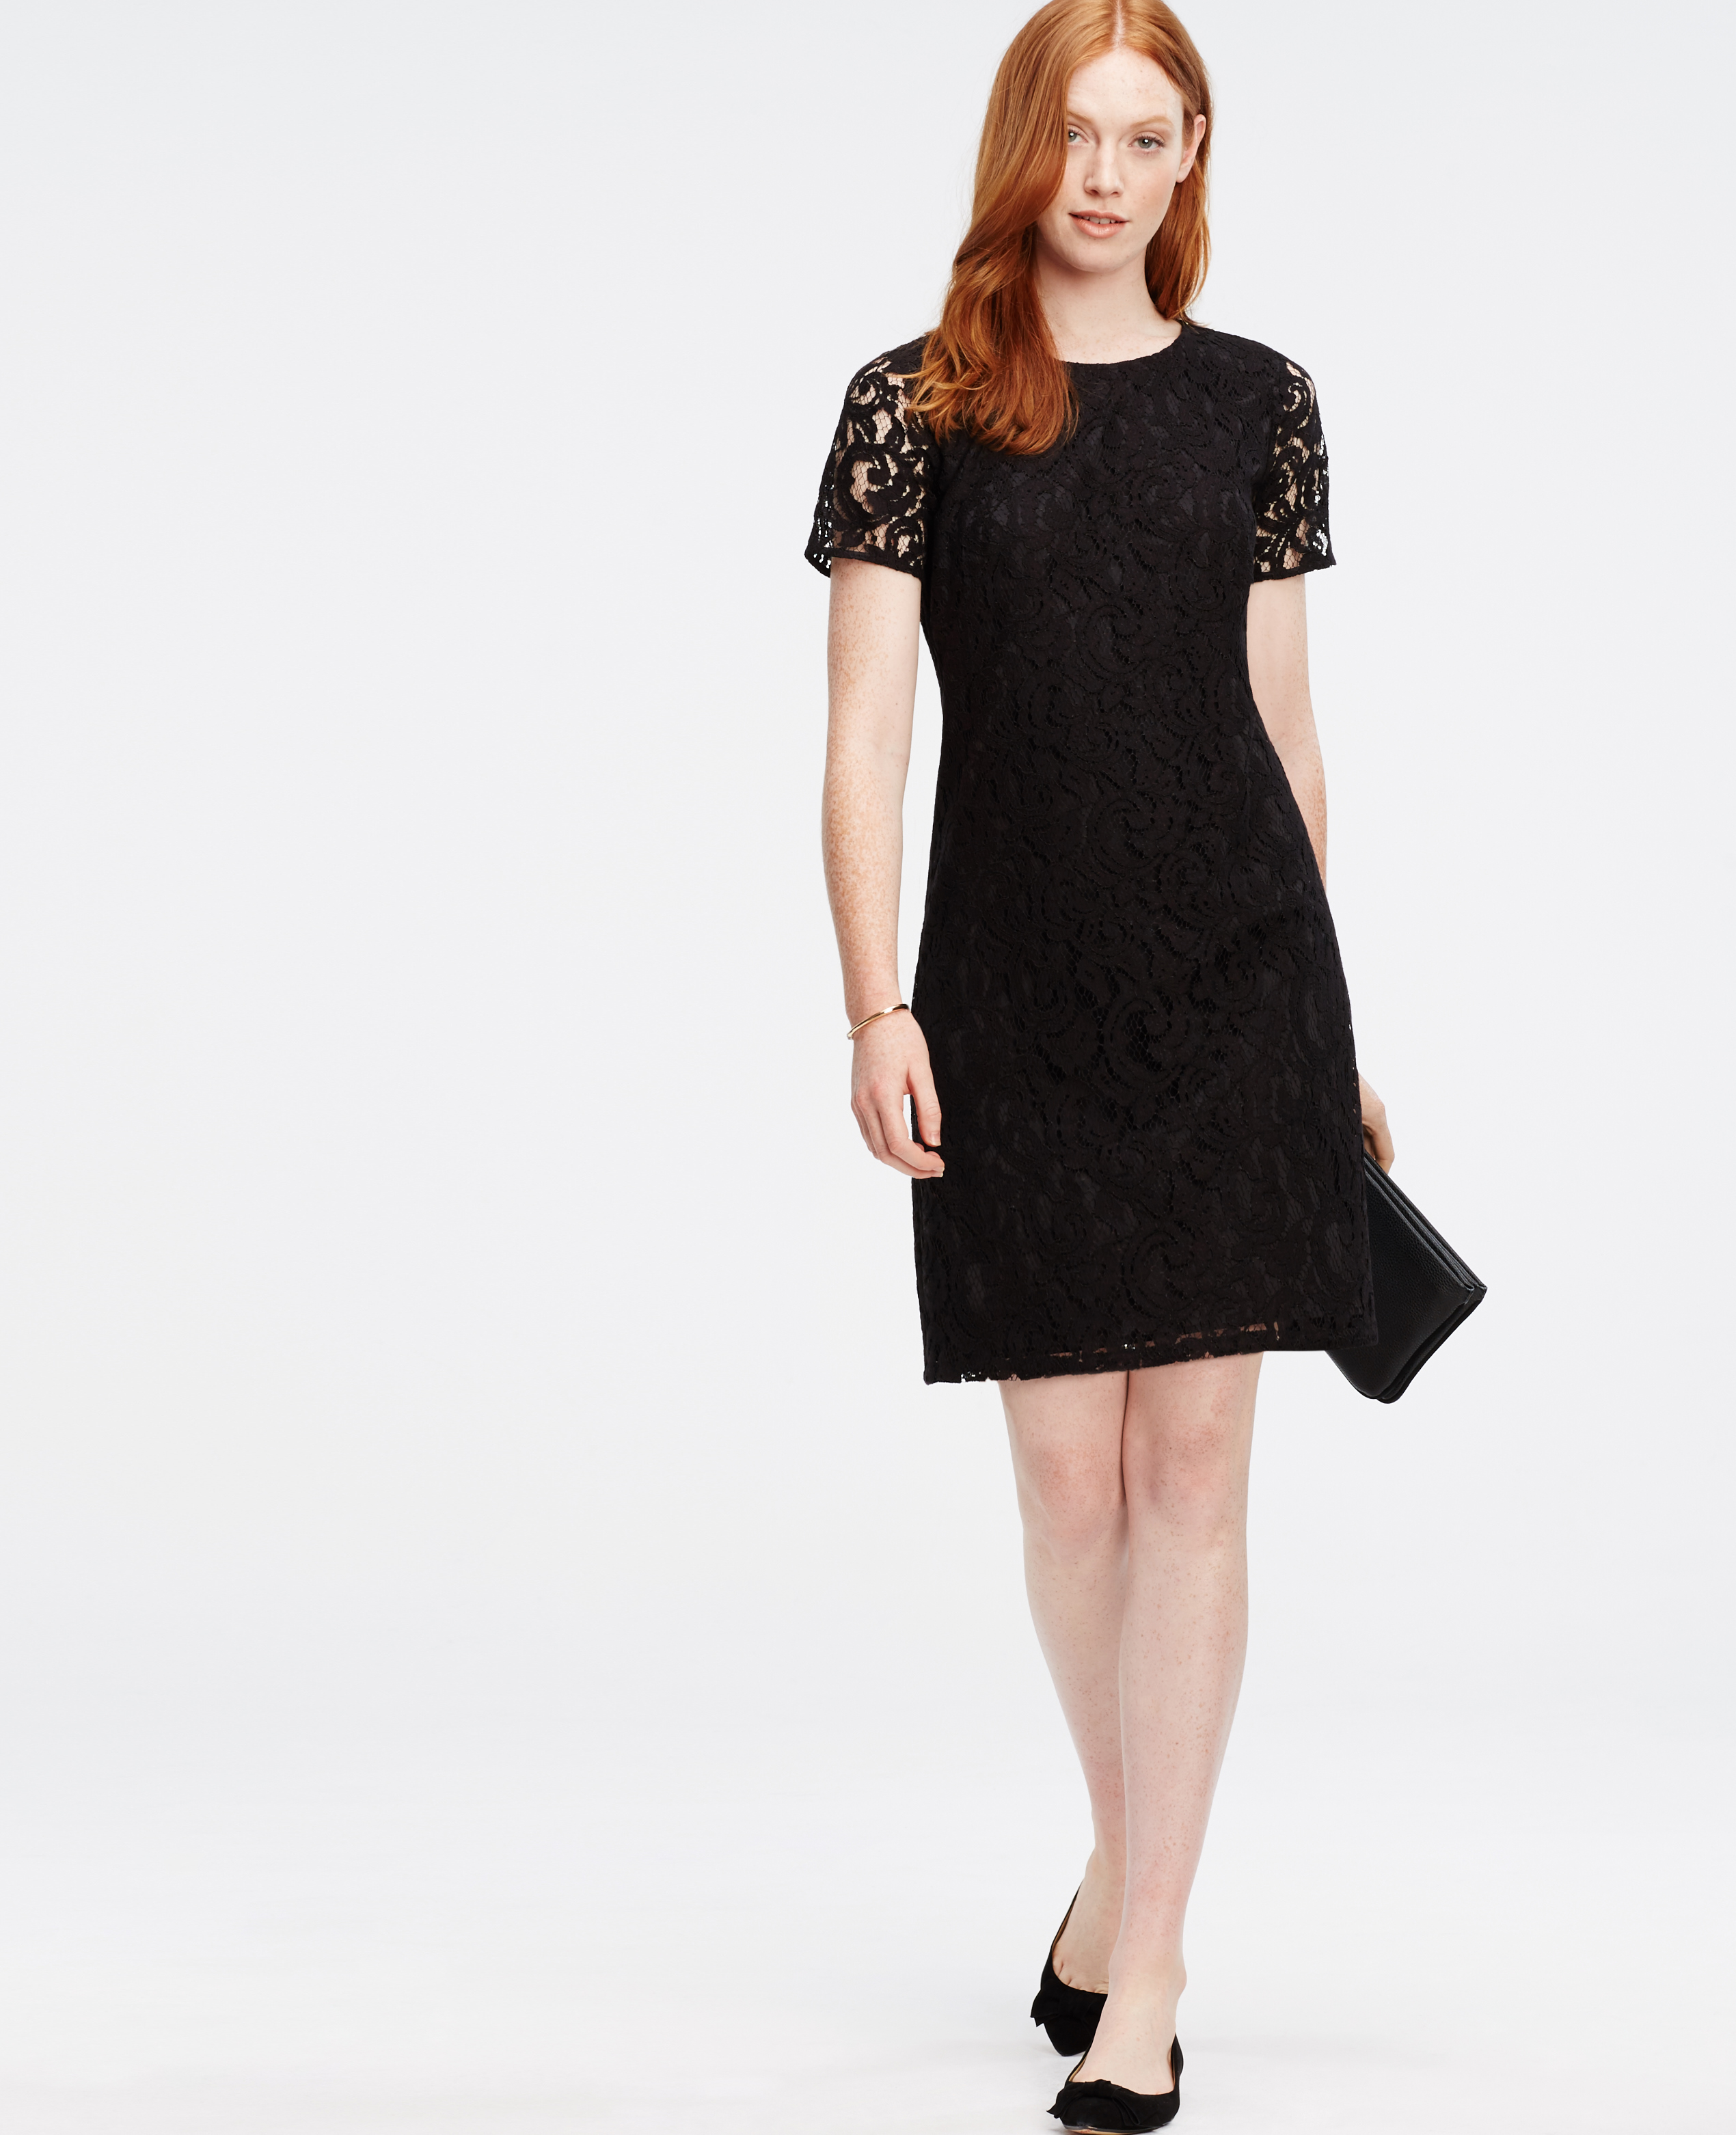 Lyst - Ann Taylor Petite Lace Shift Dress in Black